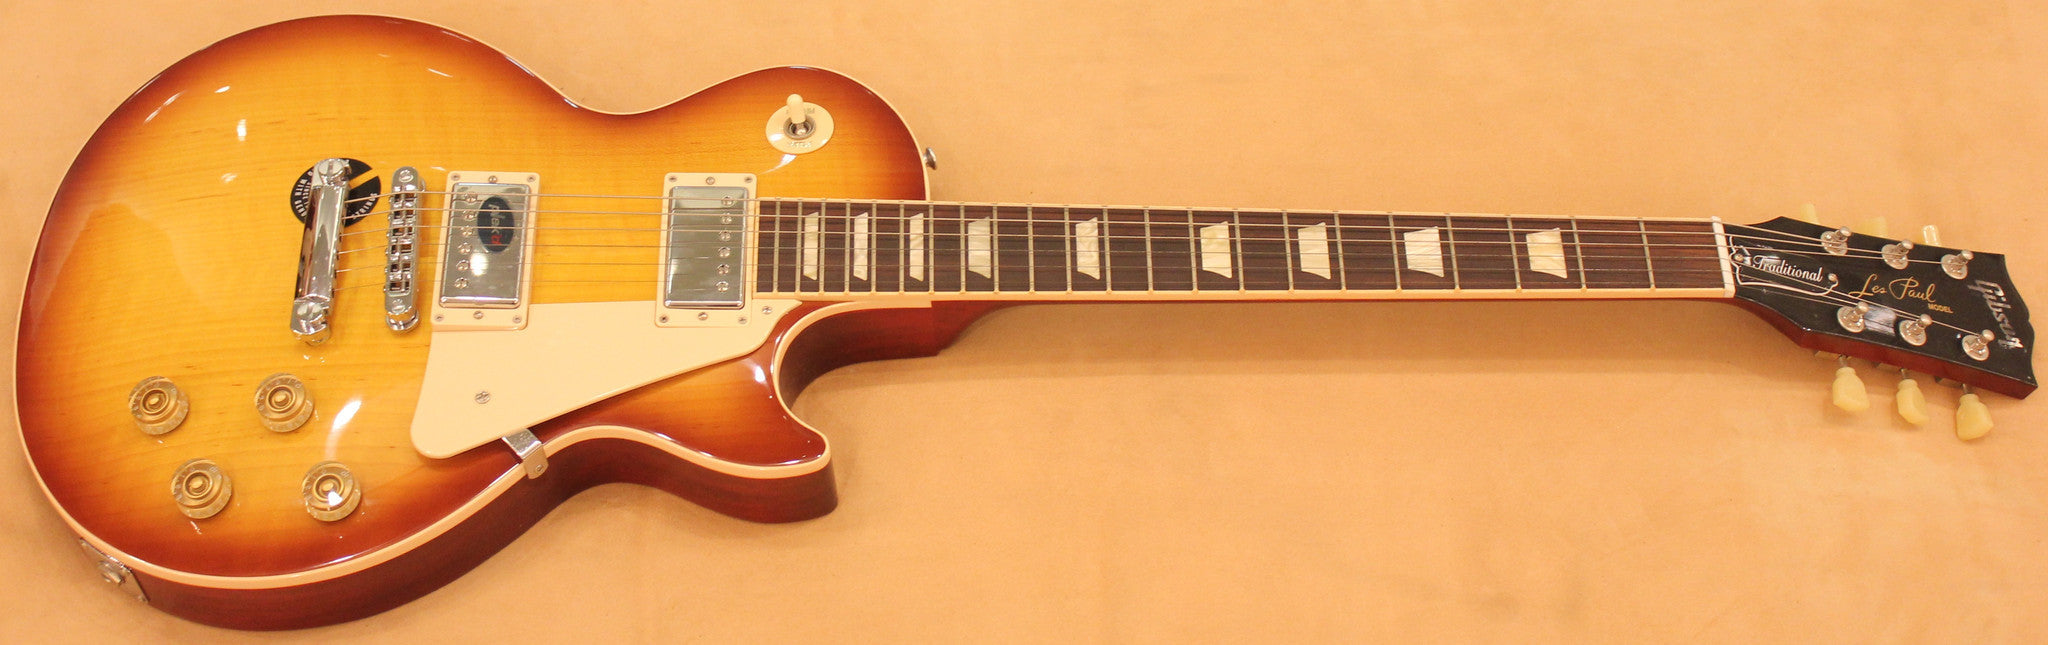 GIBSON LP TRADITIONAL 2012 ICE TEA Gibson - HIENDGUITAR.COM